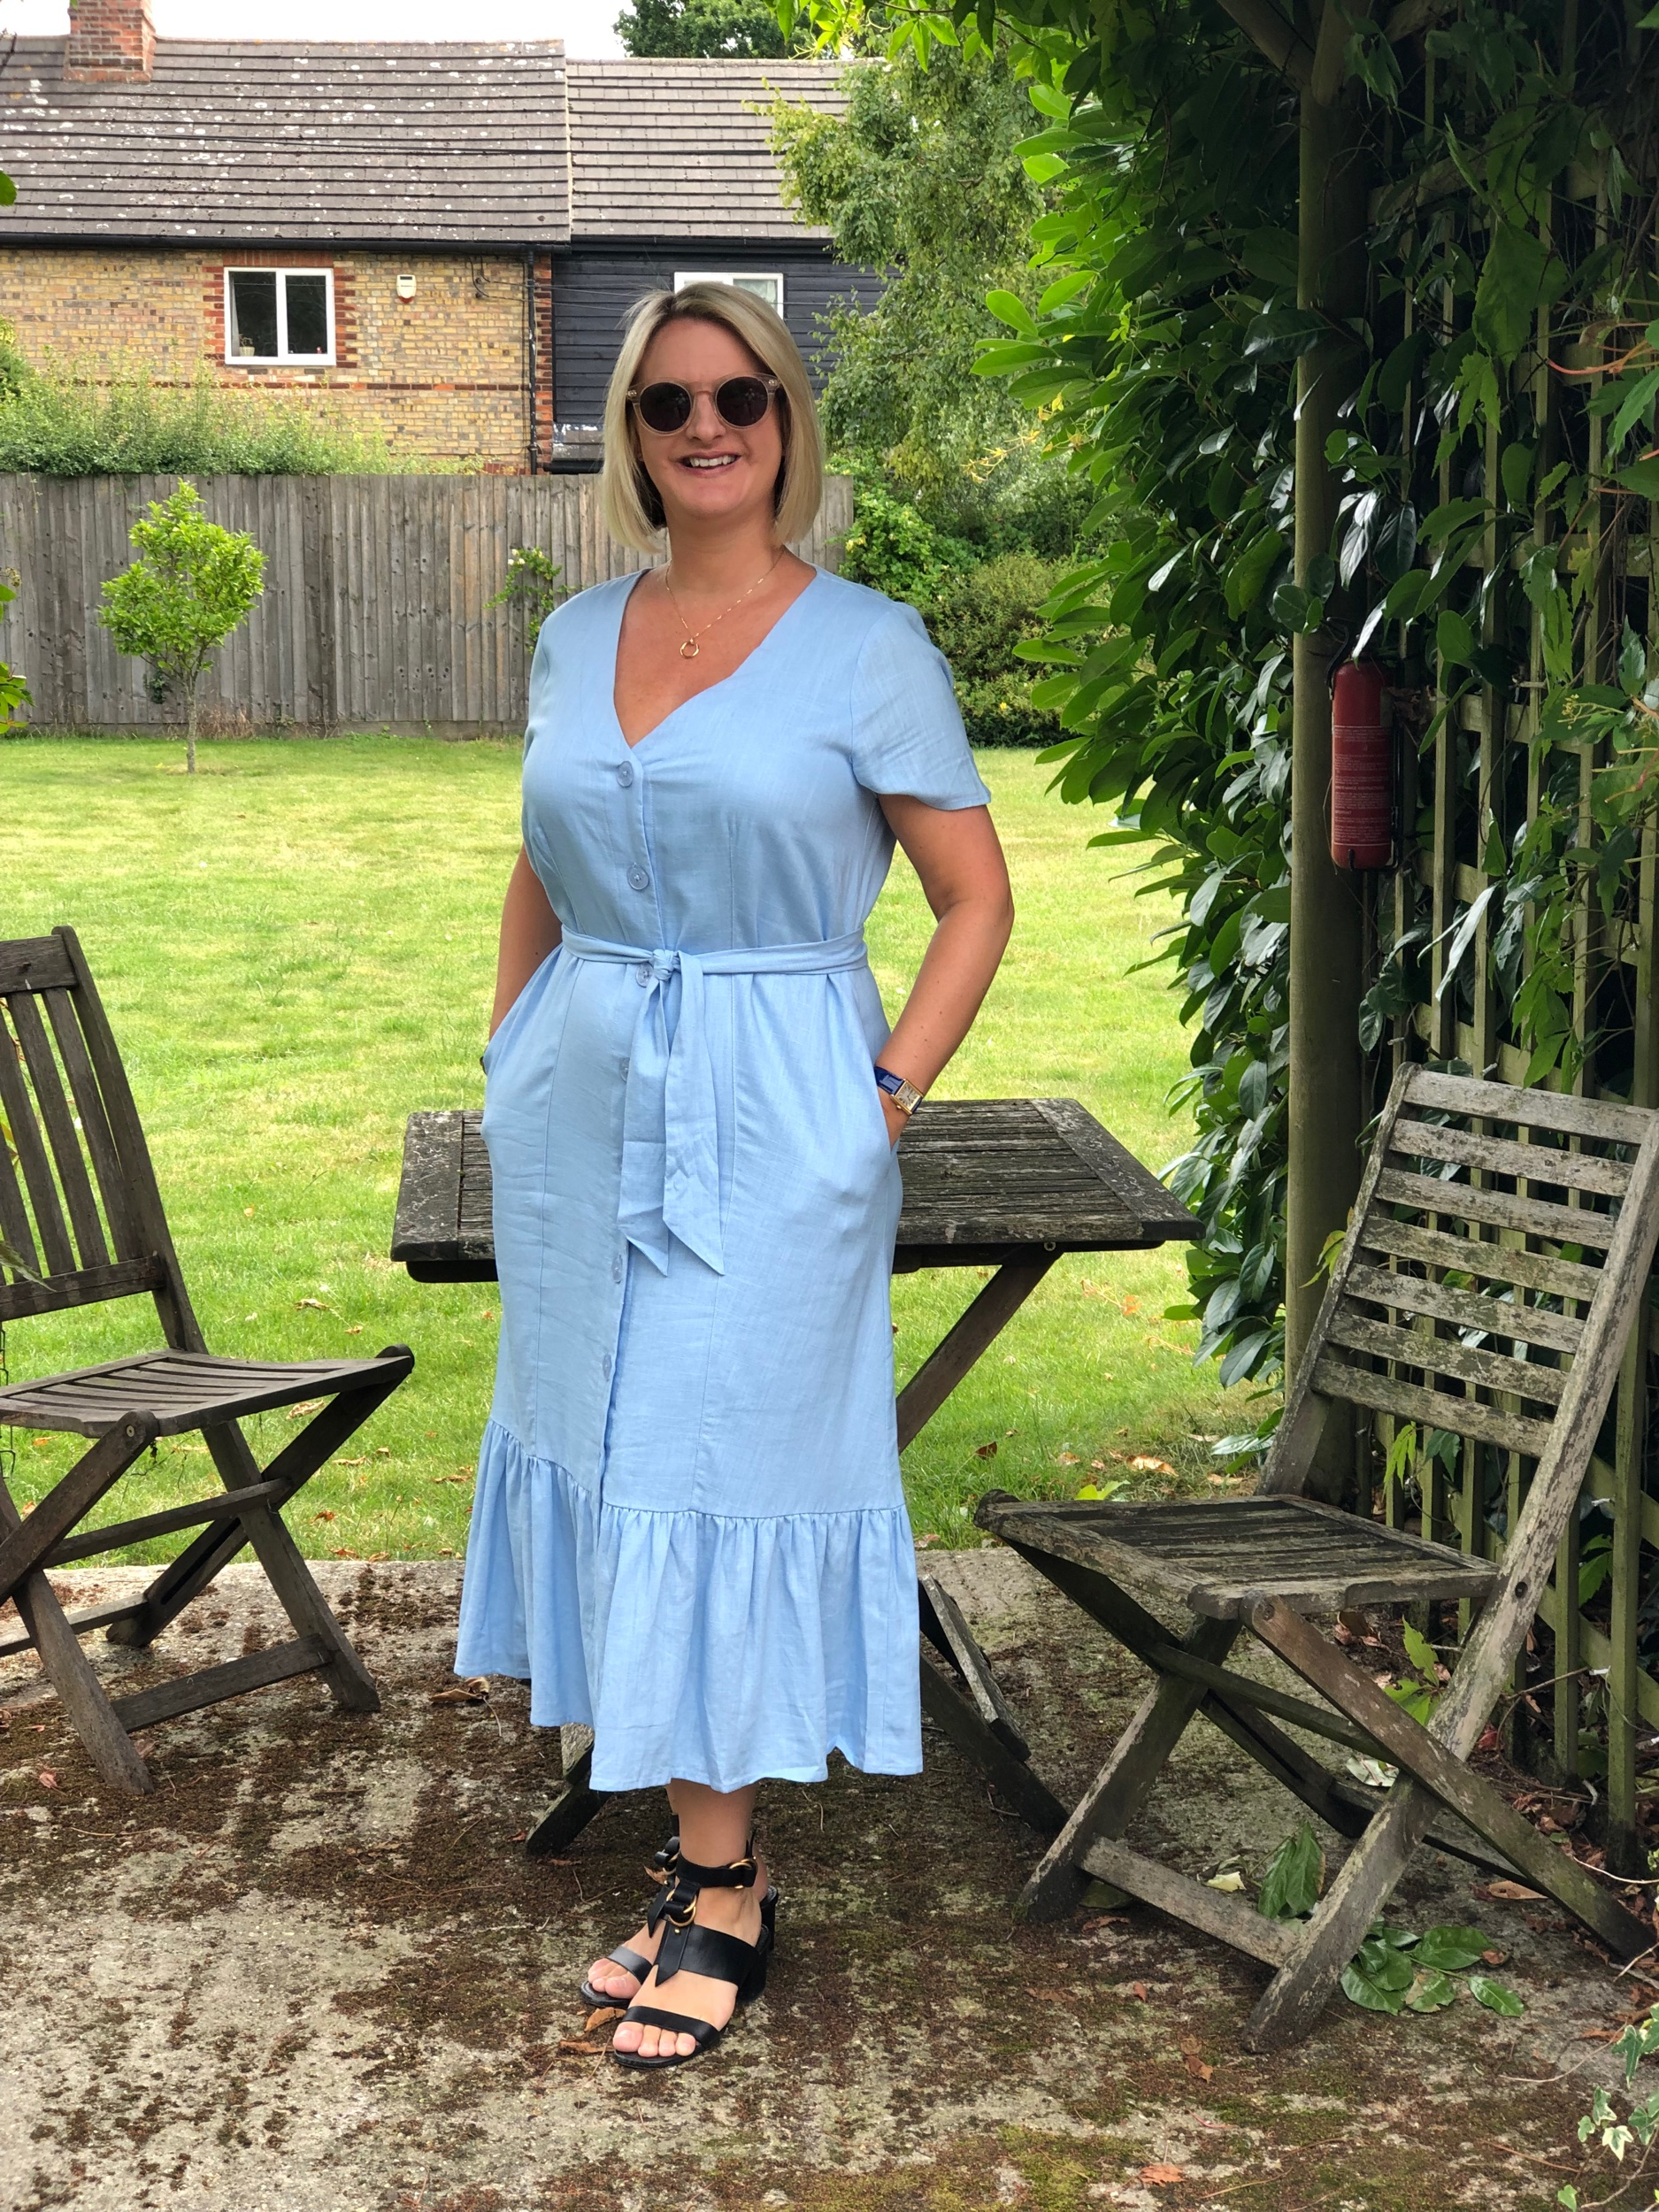 I bought this dress at Oliver Bonas at Liverpool Street station when I went up to London for a meeting at Bowel and Cancer Research a few weeks ago. I love going in to an Oliver Bonas, it's truly the most wonderfully random shop of all time, but they sell some cracking clothes amongst all the porcelain pugs, note books and drinks trolley's etc.  I bought this dress in white too, it was too tricky to choose which one I loved best and as I was on a short time frame as I was meant to be heading to a meeting I made an executive decision. Hahahahaha